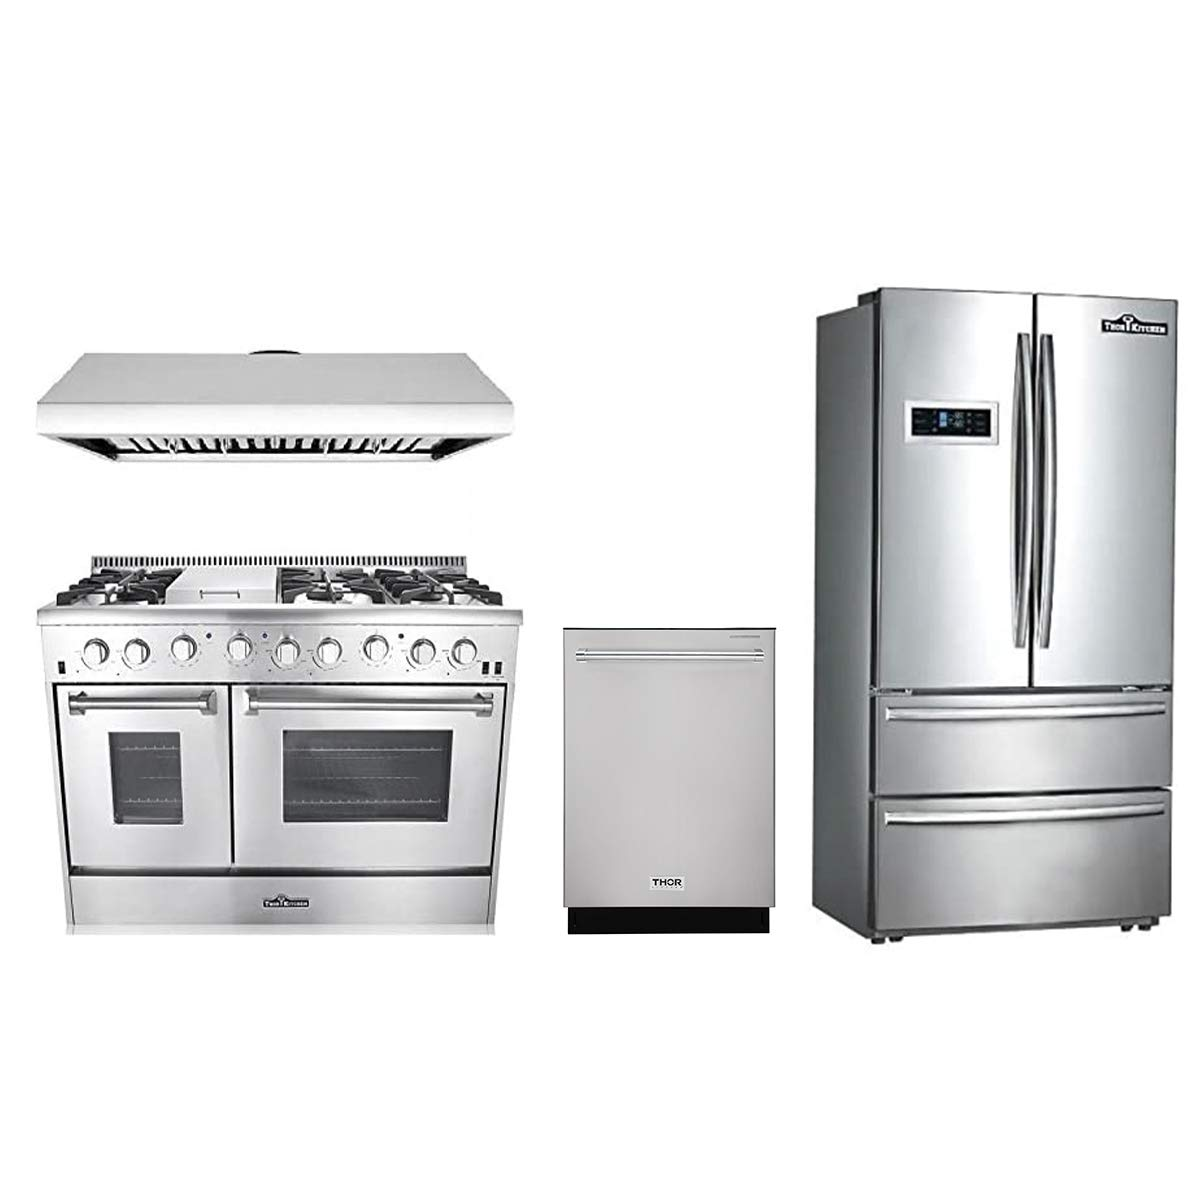 Amazon Com Thor Kitchen 4 Piece Bundle With 48 6 Burner Stainless Steel Gas Range 48 Under Cabinet Range Hood 36 Franch Door Fridge And 24 Dishwasher Appliances